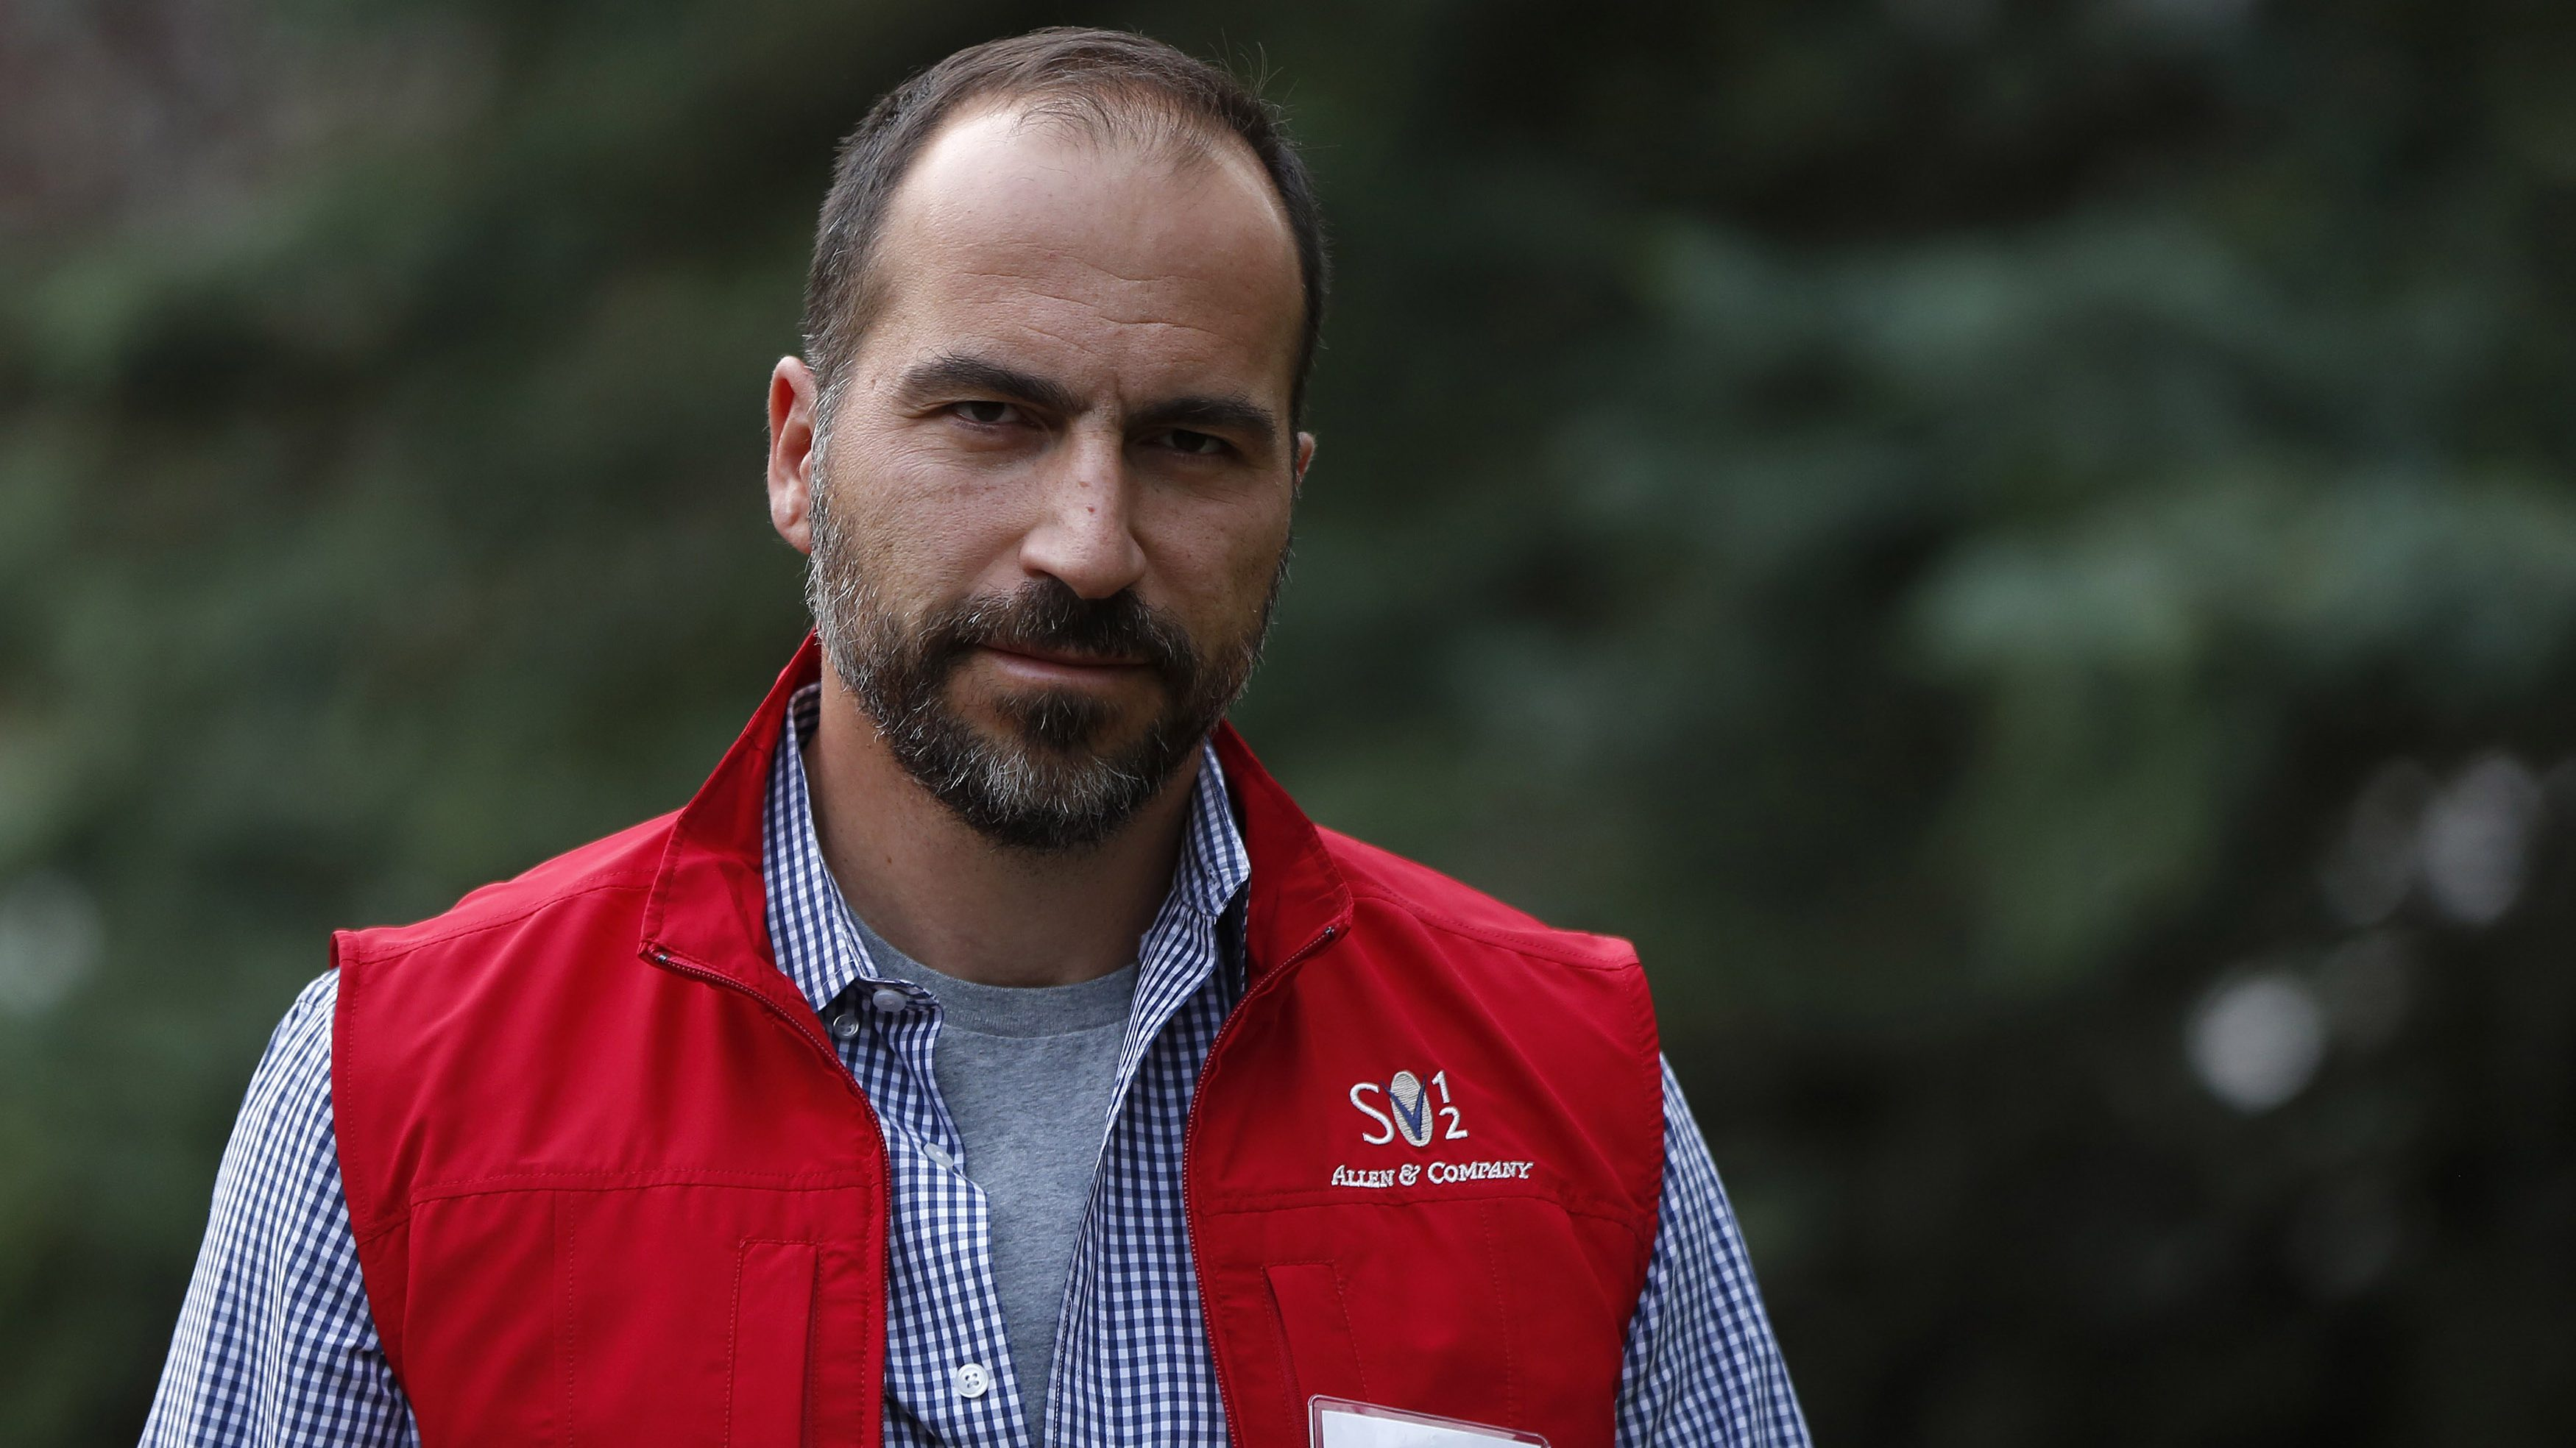 CEO of Expedia, Inc. Dara Khosrowshahi attends the Allen & Co Media Conference in Sun Valley, Idaho July 13, 2012.